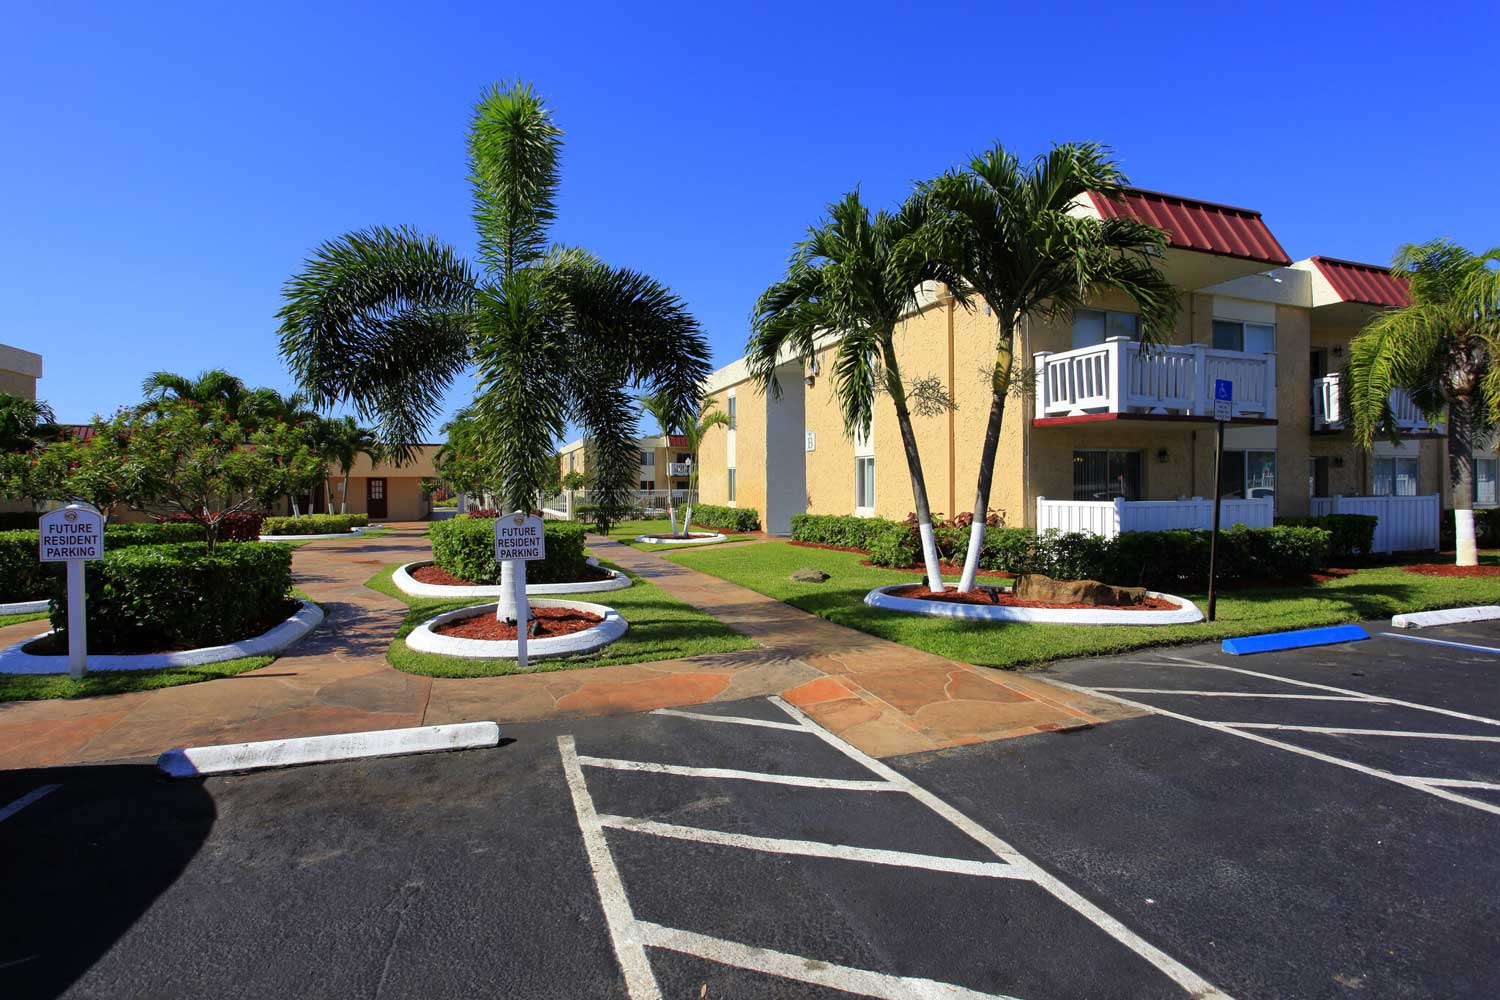 Lush Landscaping with Palm Trees at Windsor Forest Apartments in Pompano Beach, FL